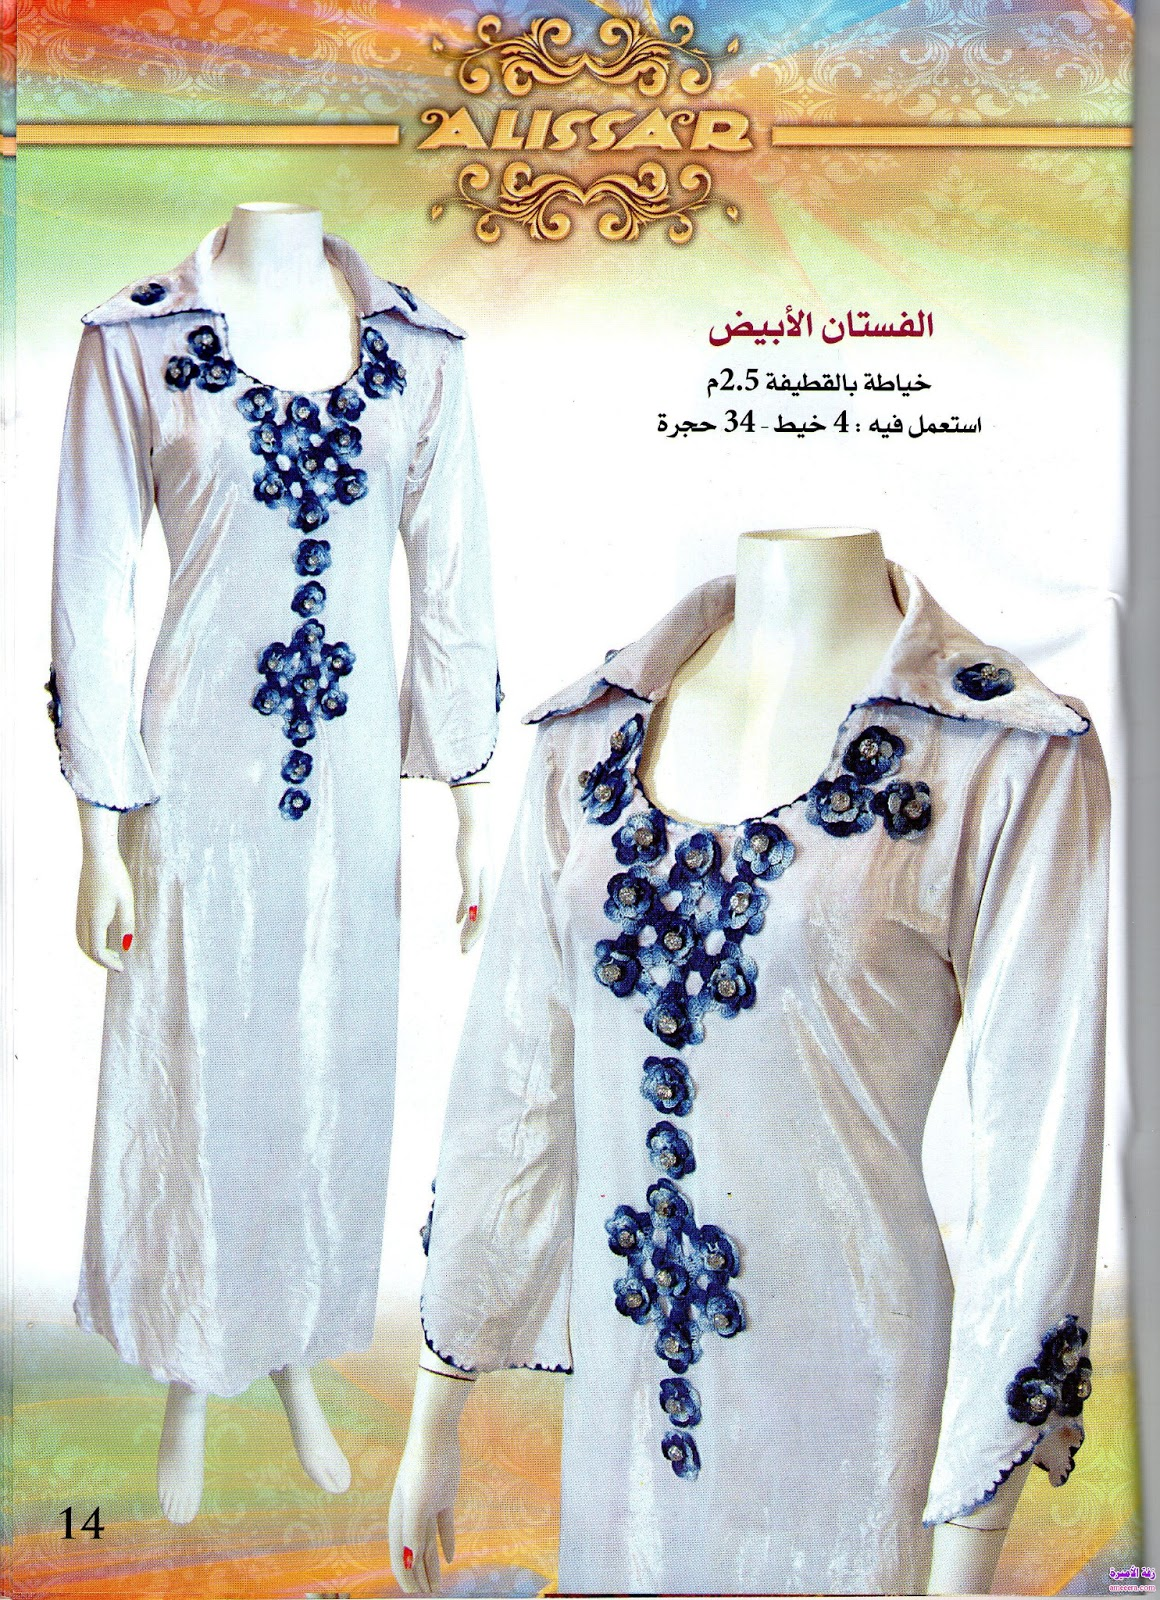 exclusive magazine basma n 1 robe d'interieur 2012